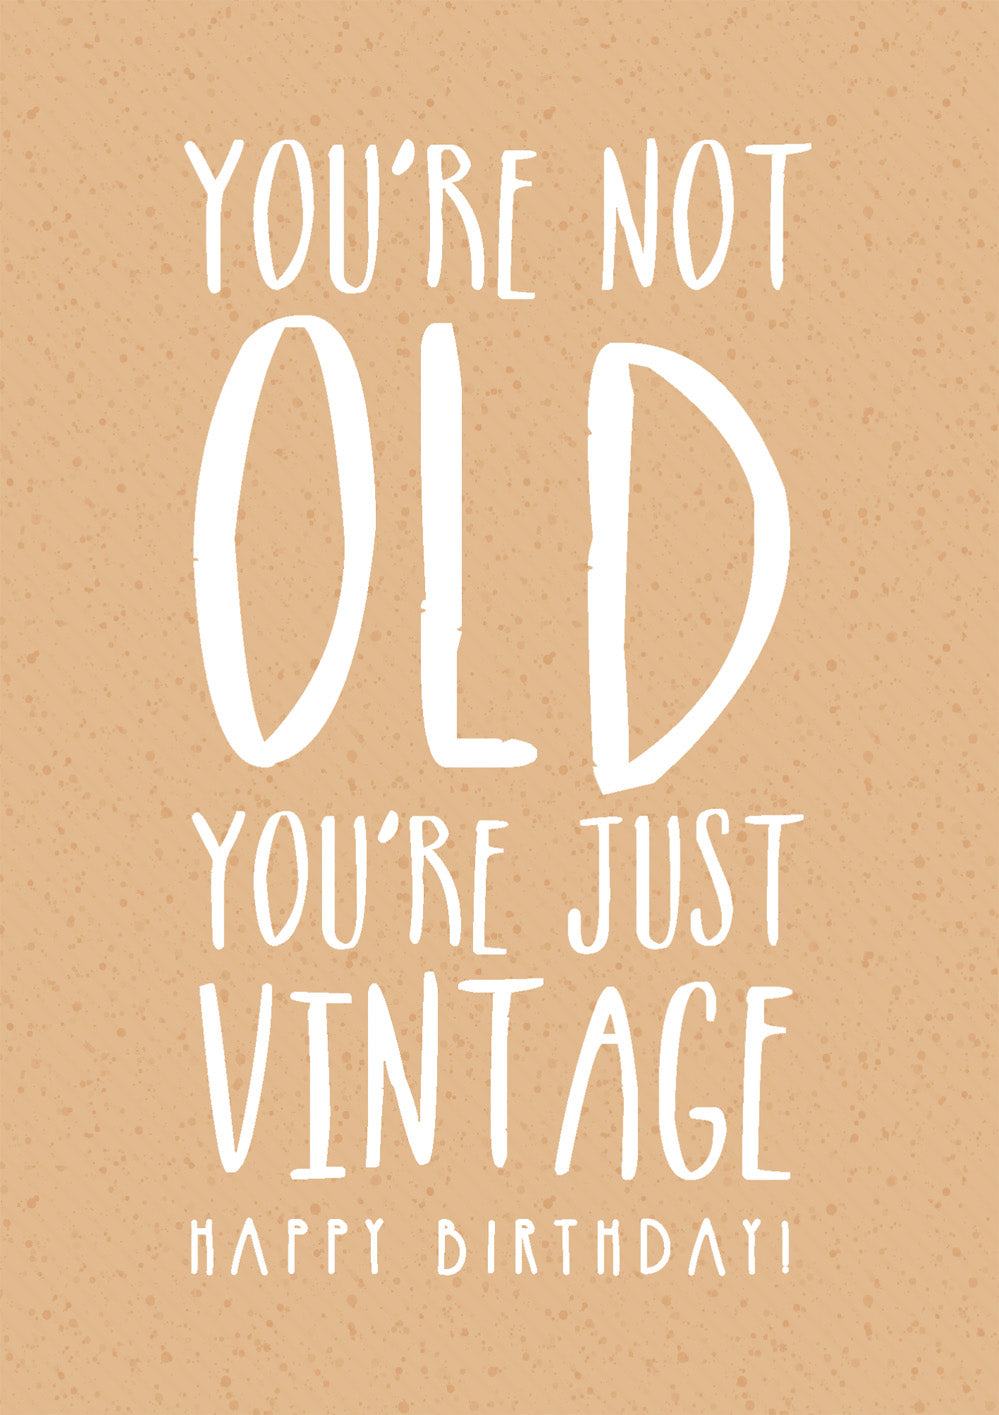 Happy Birthday (Adult) - You'Re Not Old, You'Re Just Vintage -  Standard CardHappy Birthday (Adult) - You'Re Not Old, You'Re Just Vintage -  Standard Card